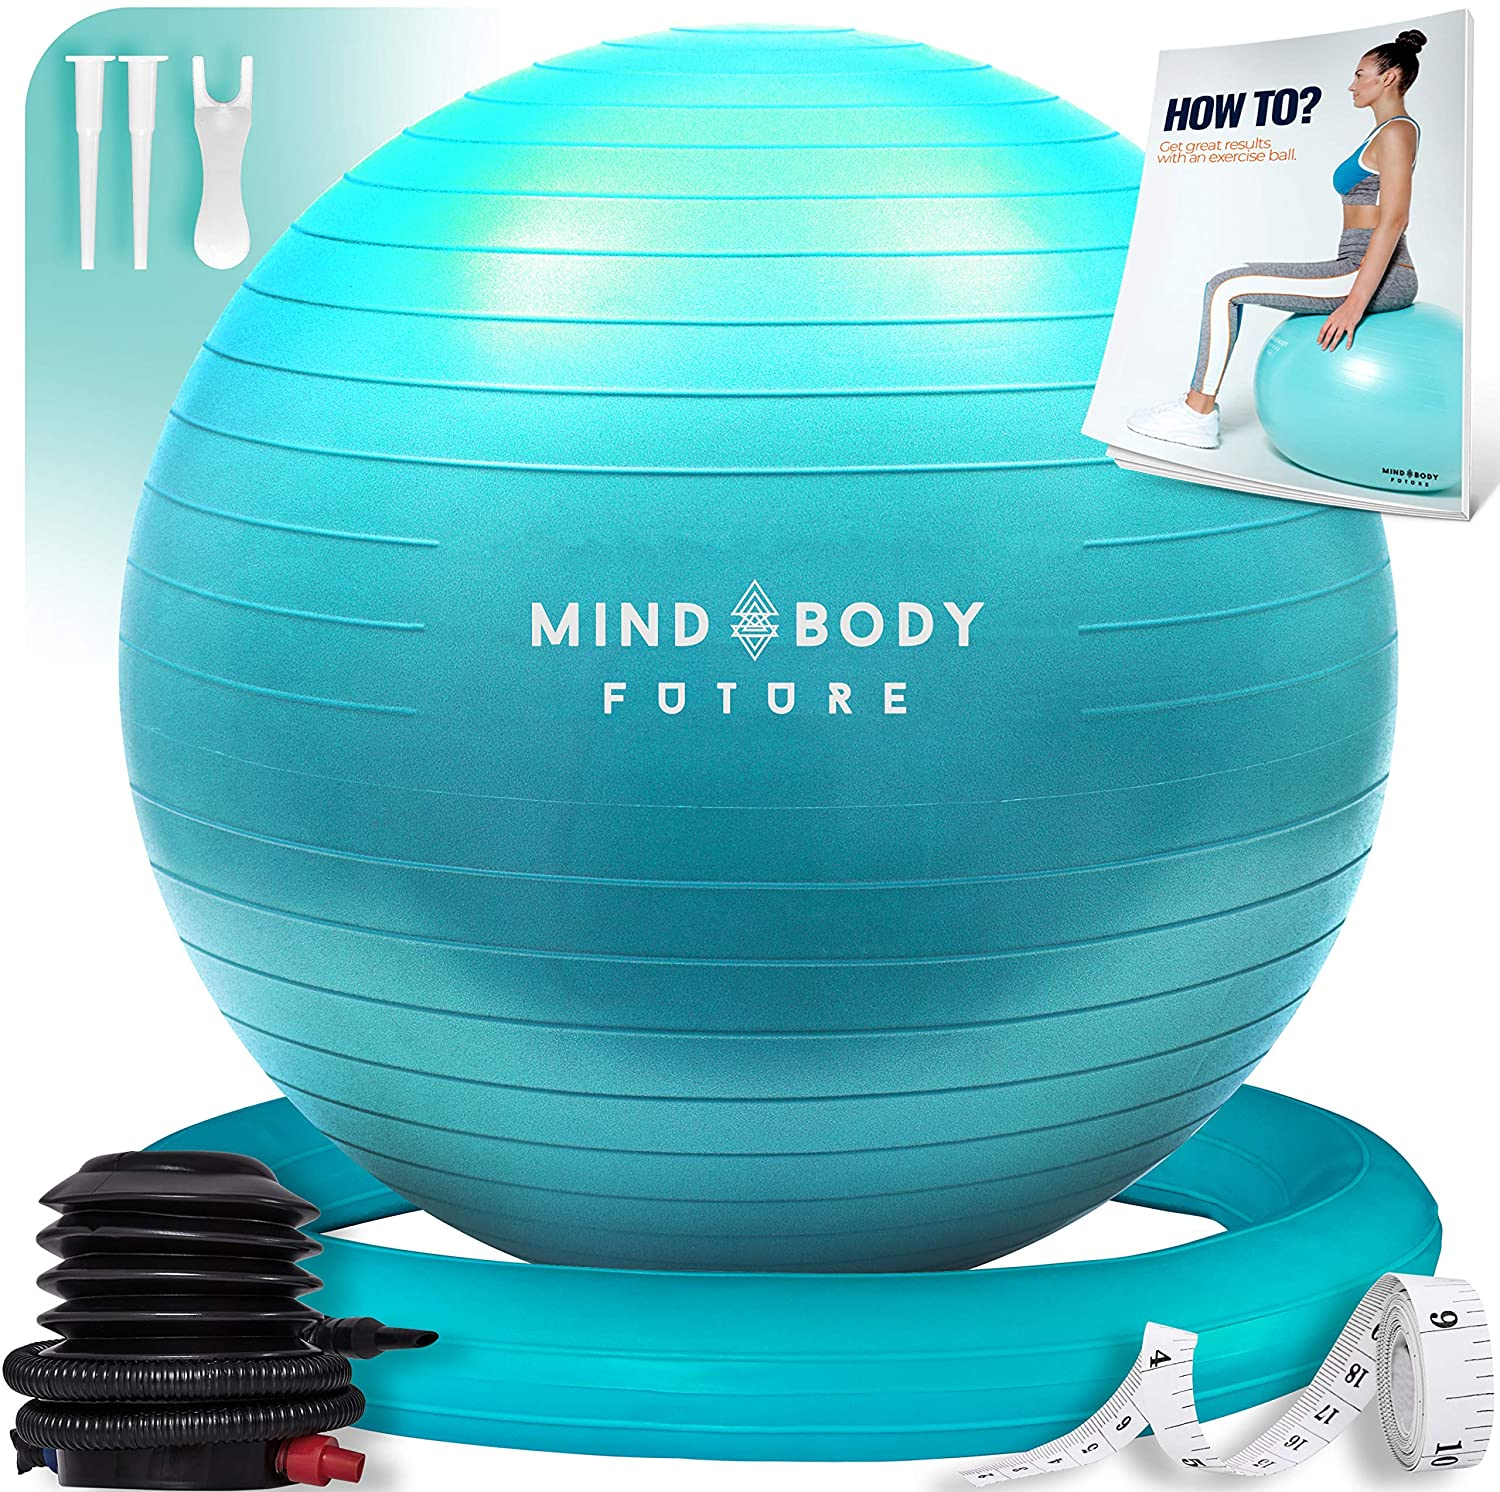 Yoga Ball Chair (55cm, 65cm & 75cm) - Exercise Ball & Stability Ring. For Pregnancy, Balance, Pilates or Birthing Therapy.